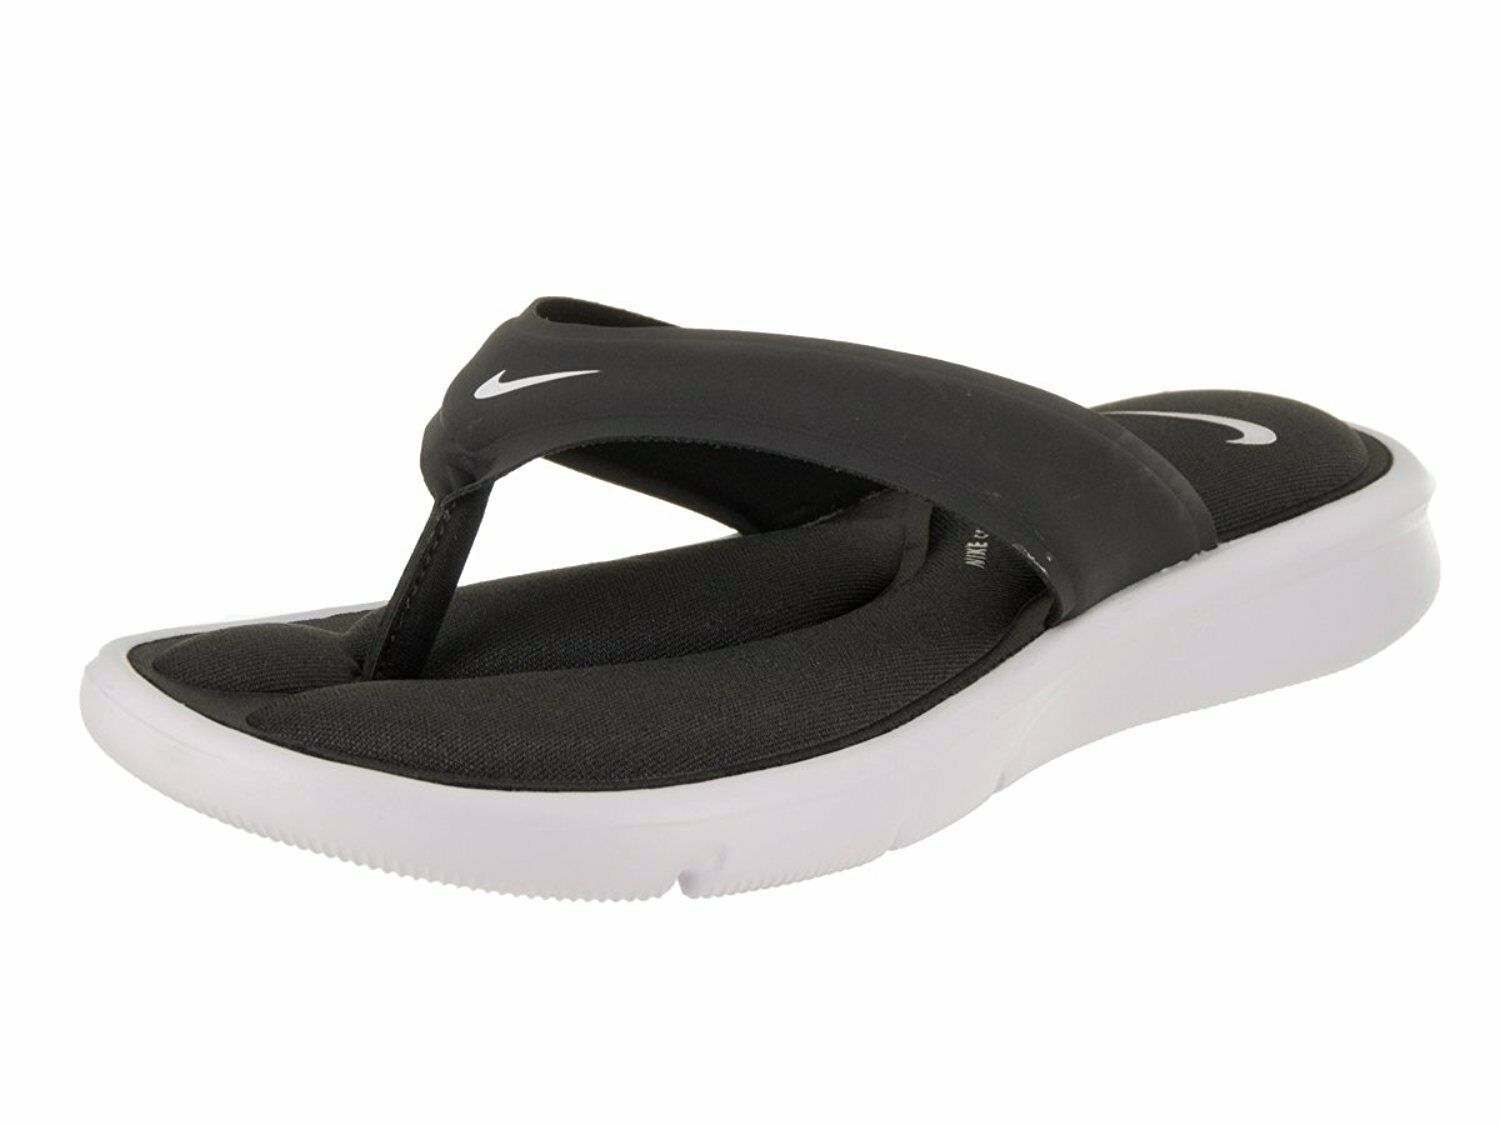 Women's Nike Ultra Comfort Thong Sandals, 882697 004 Size 6 Anthracite/White